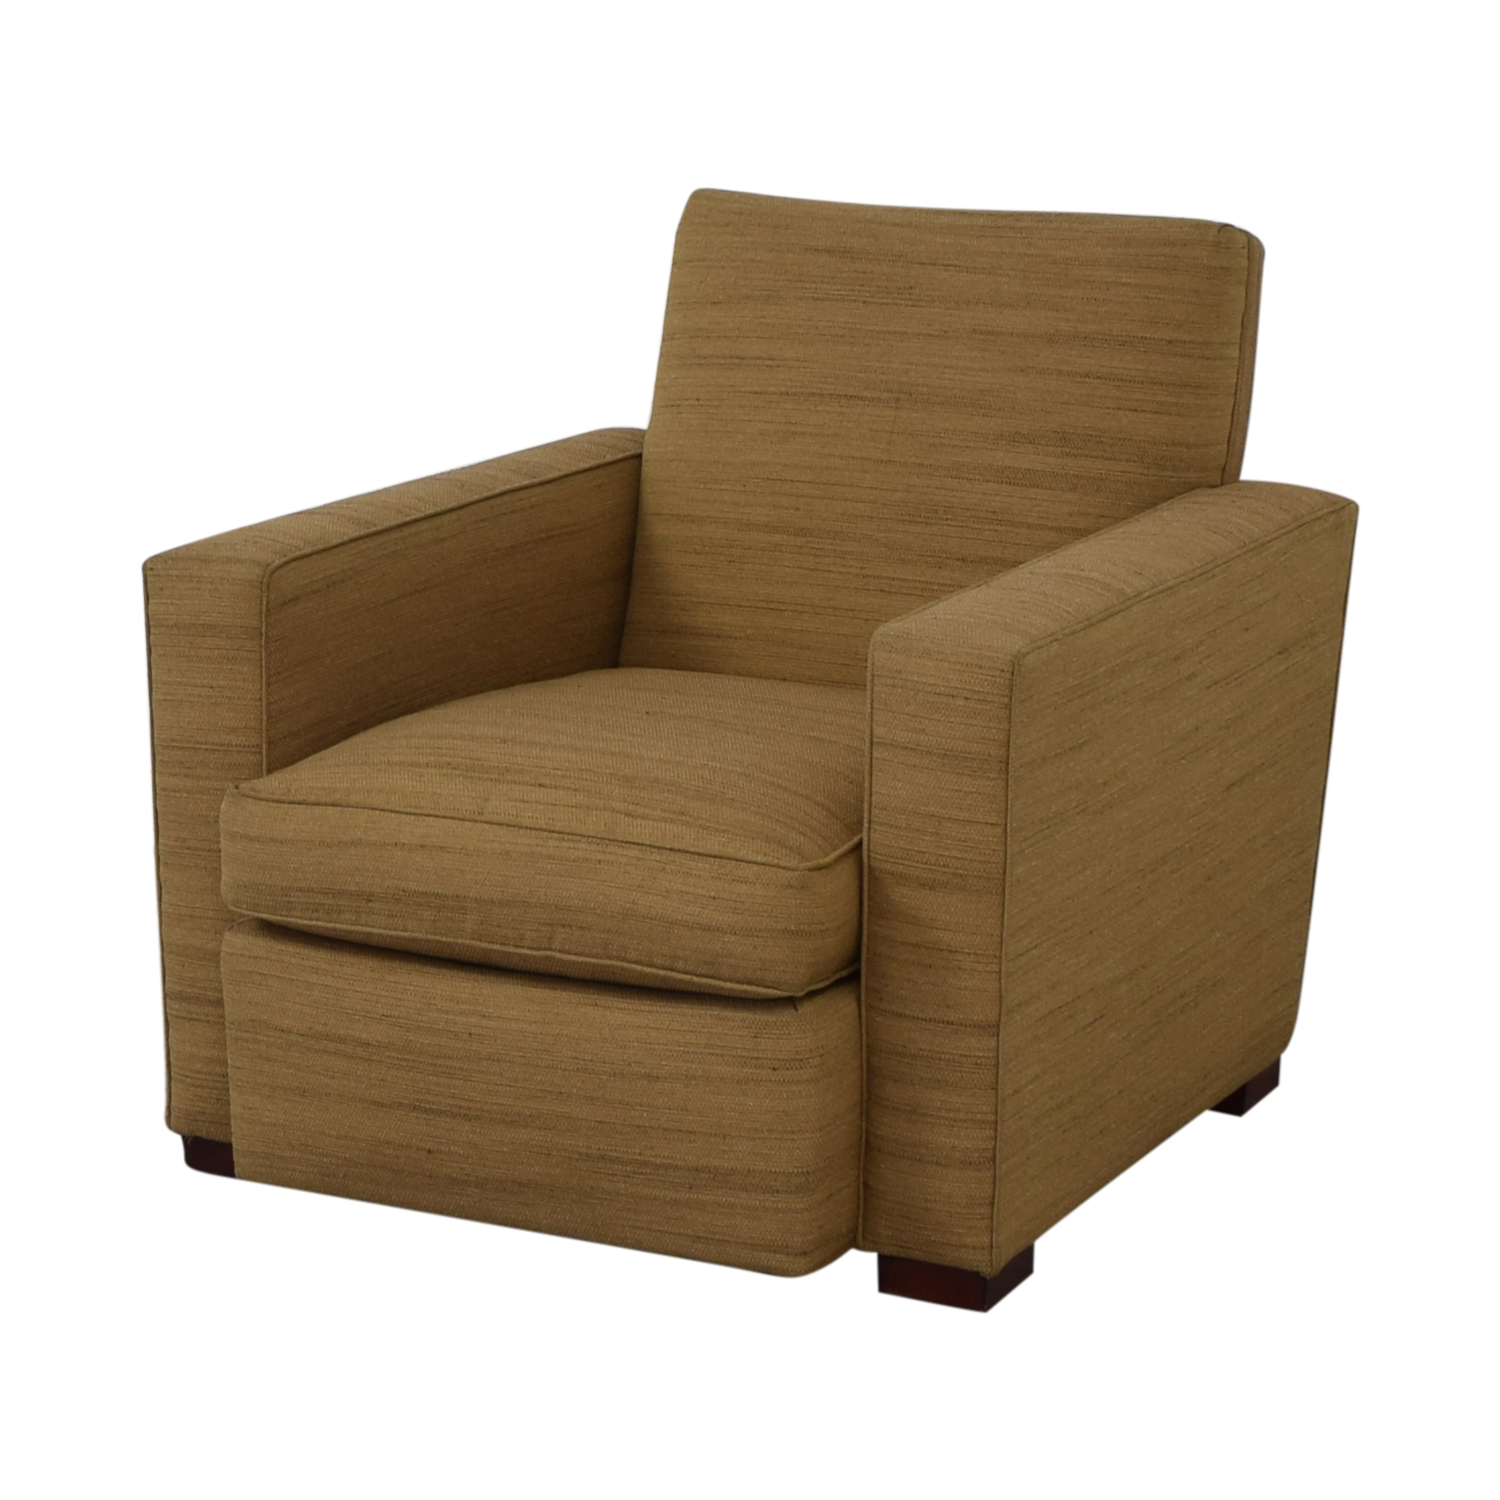 Hickory Chair Hickory Chair Accent Chair price